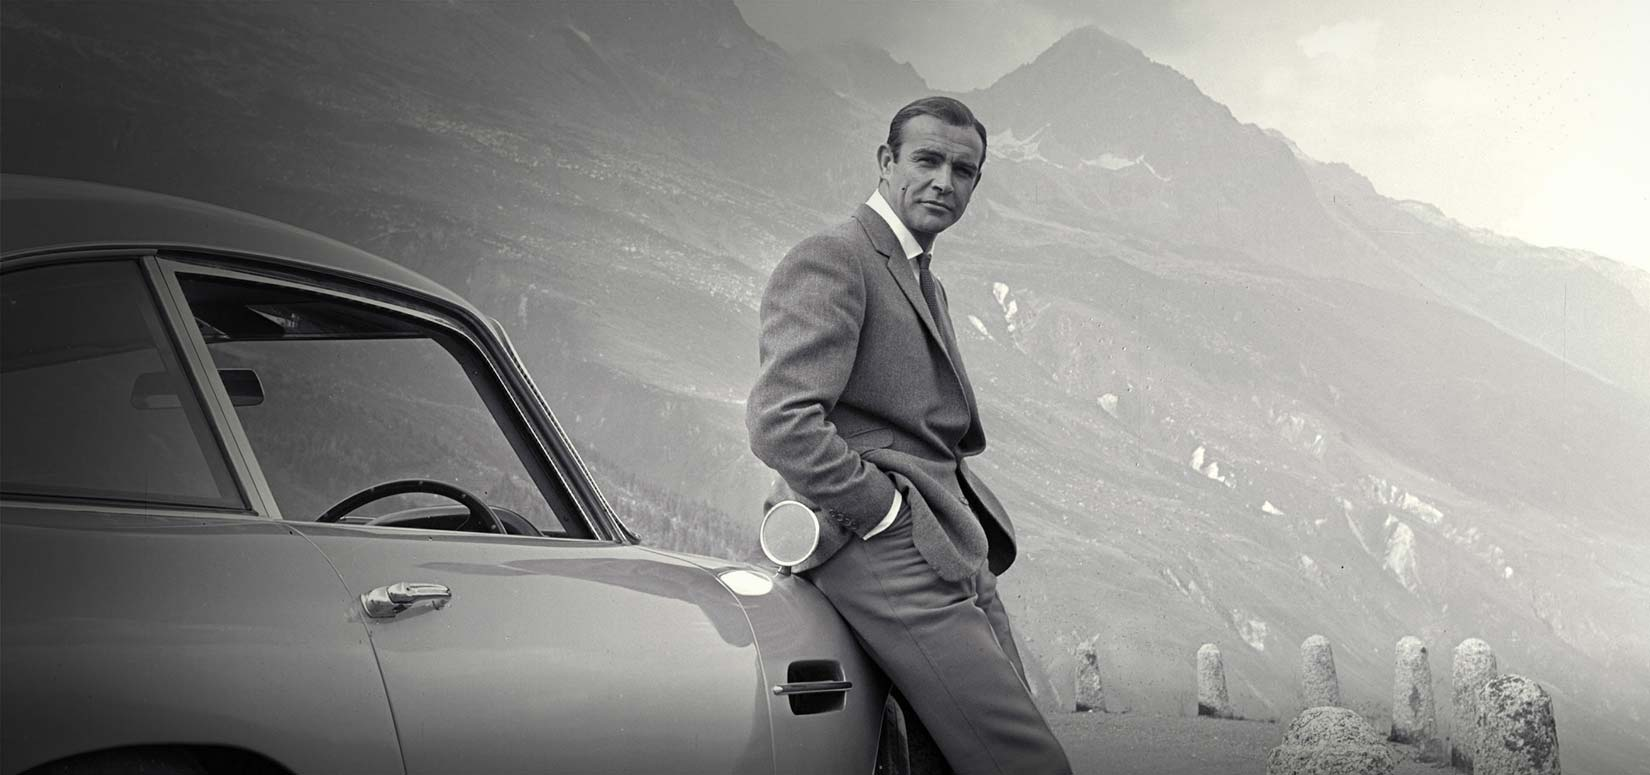 A silver aston martin db5 in goldfinger: sean connery in a custom fitted grey suit